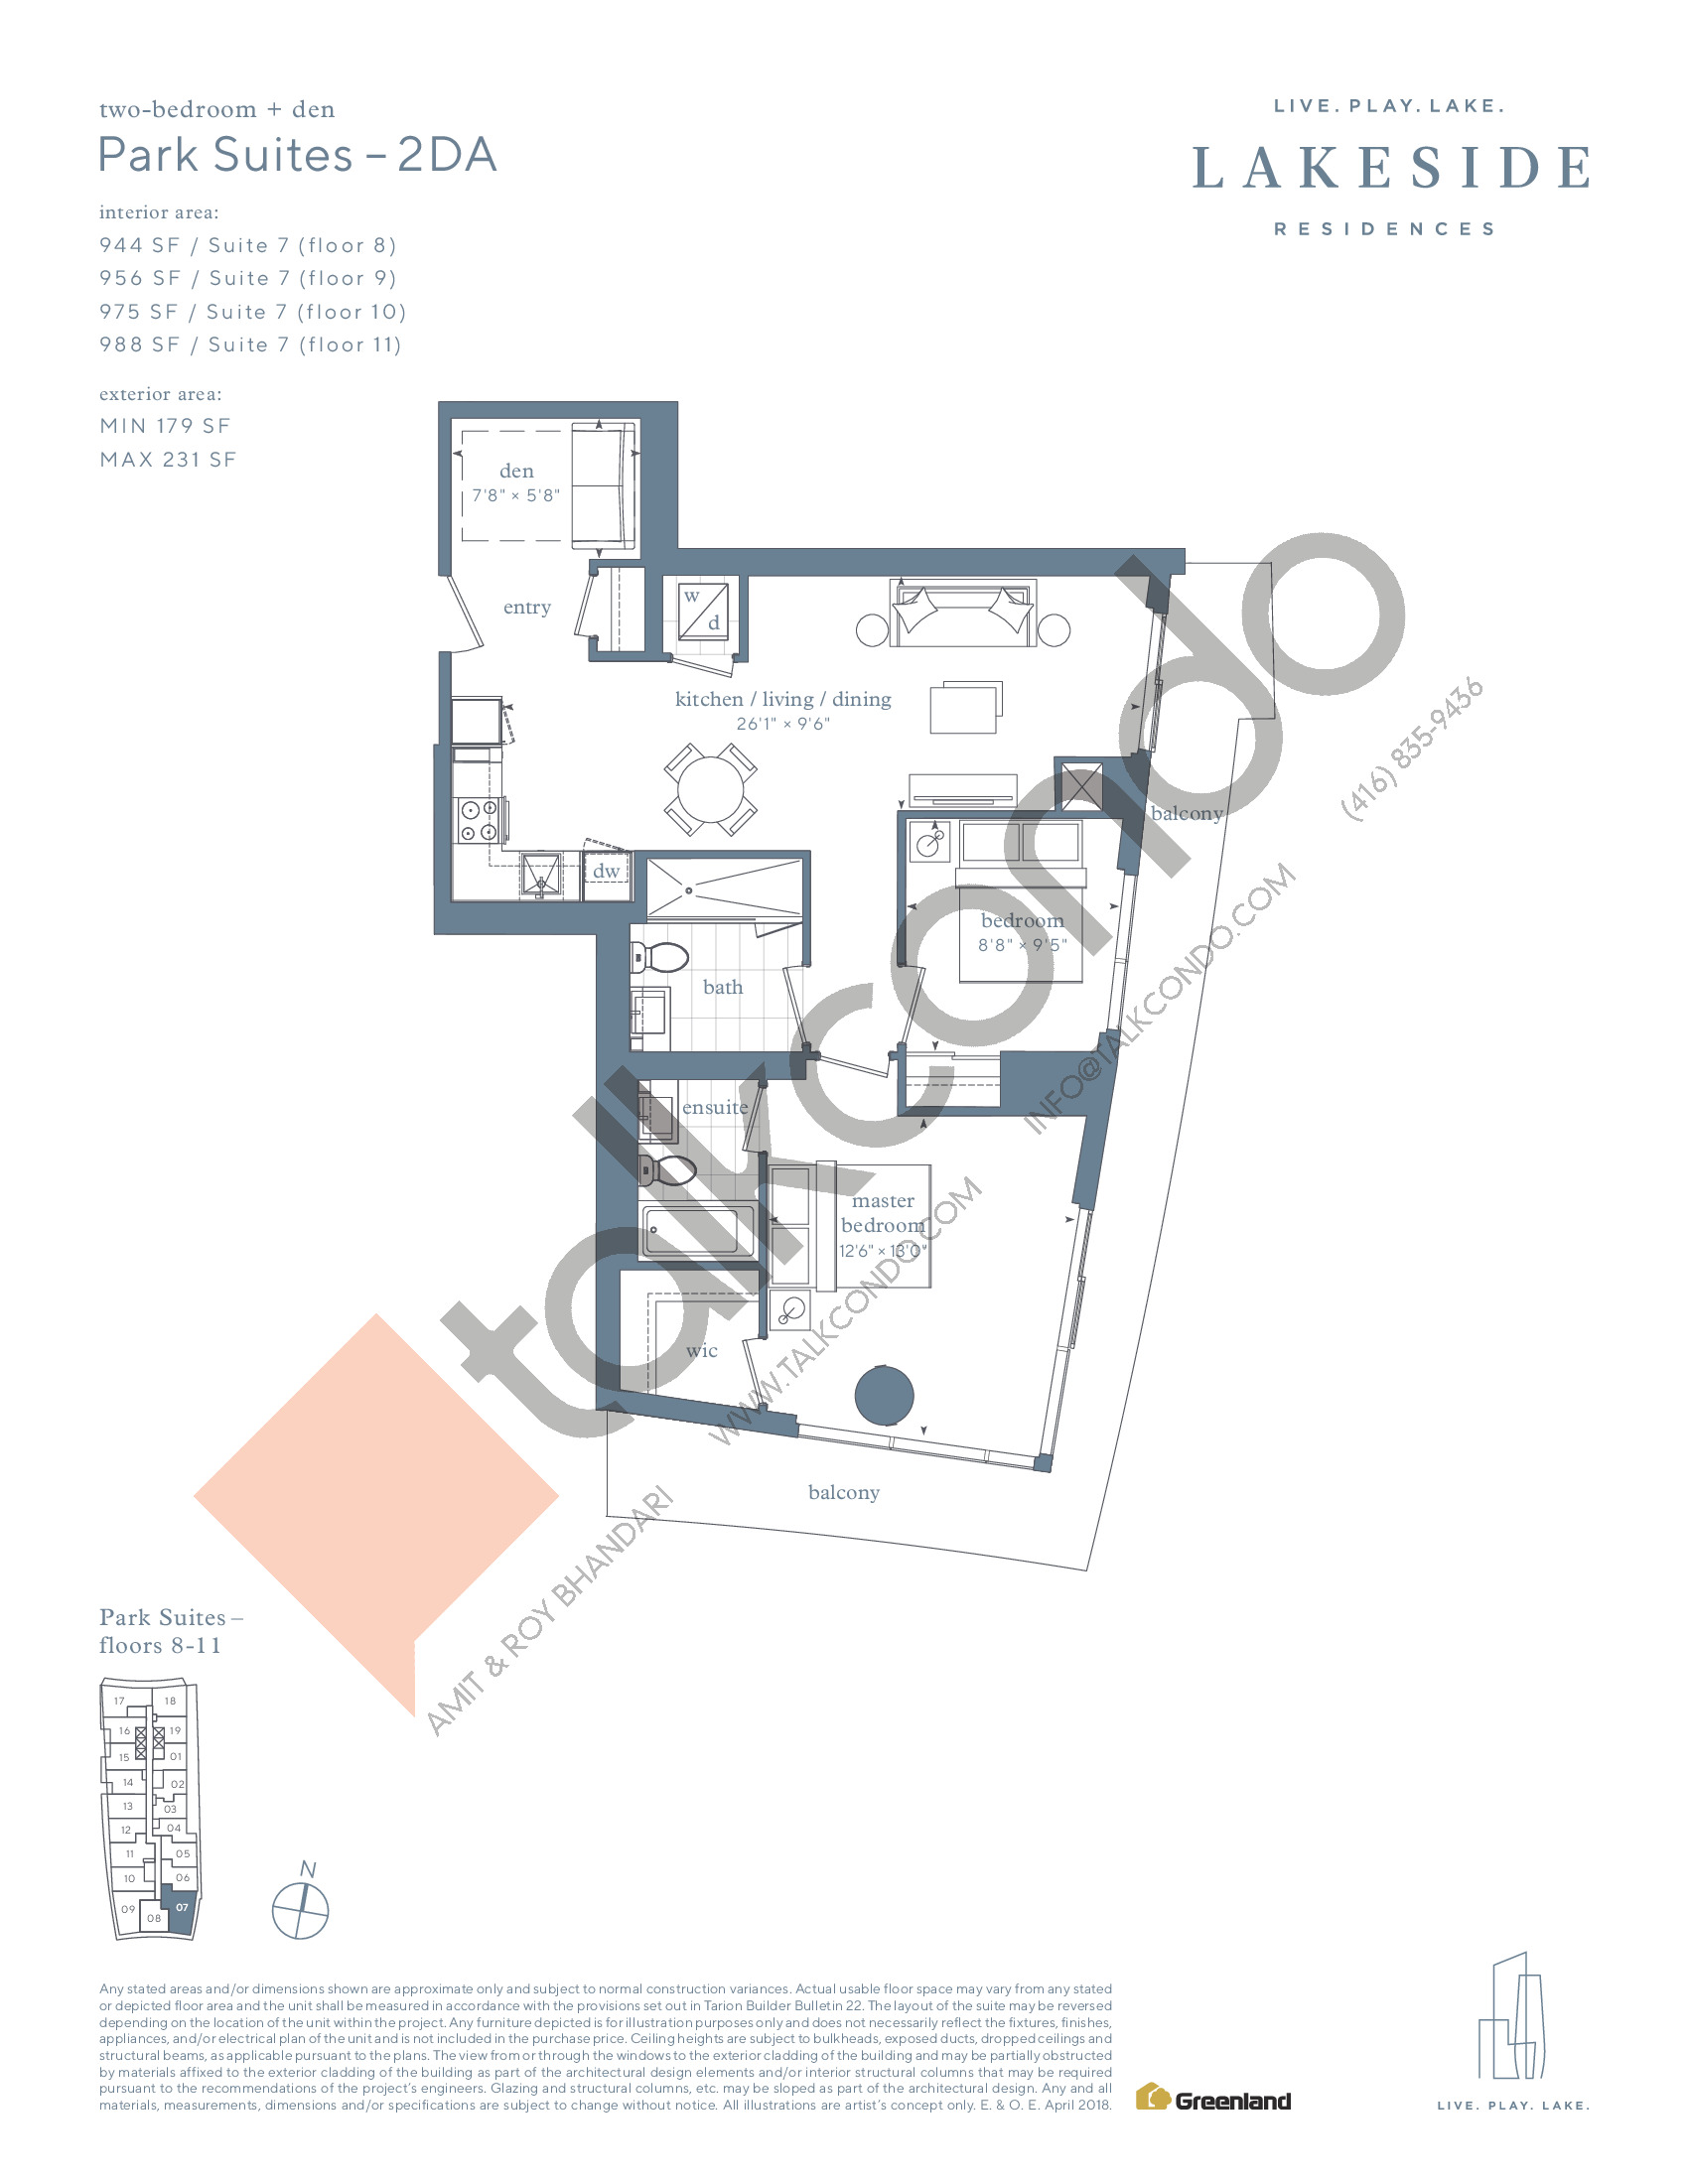 Park Suites - 2DA Floor Plan at Lakeside Residences - 988 sq.ft